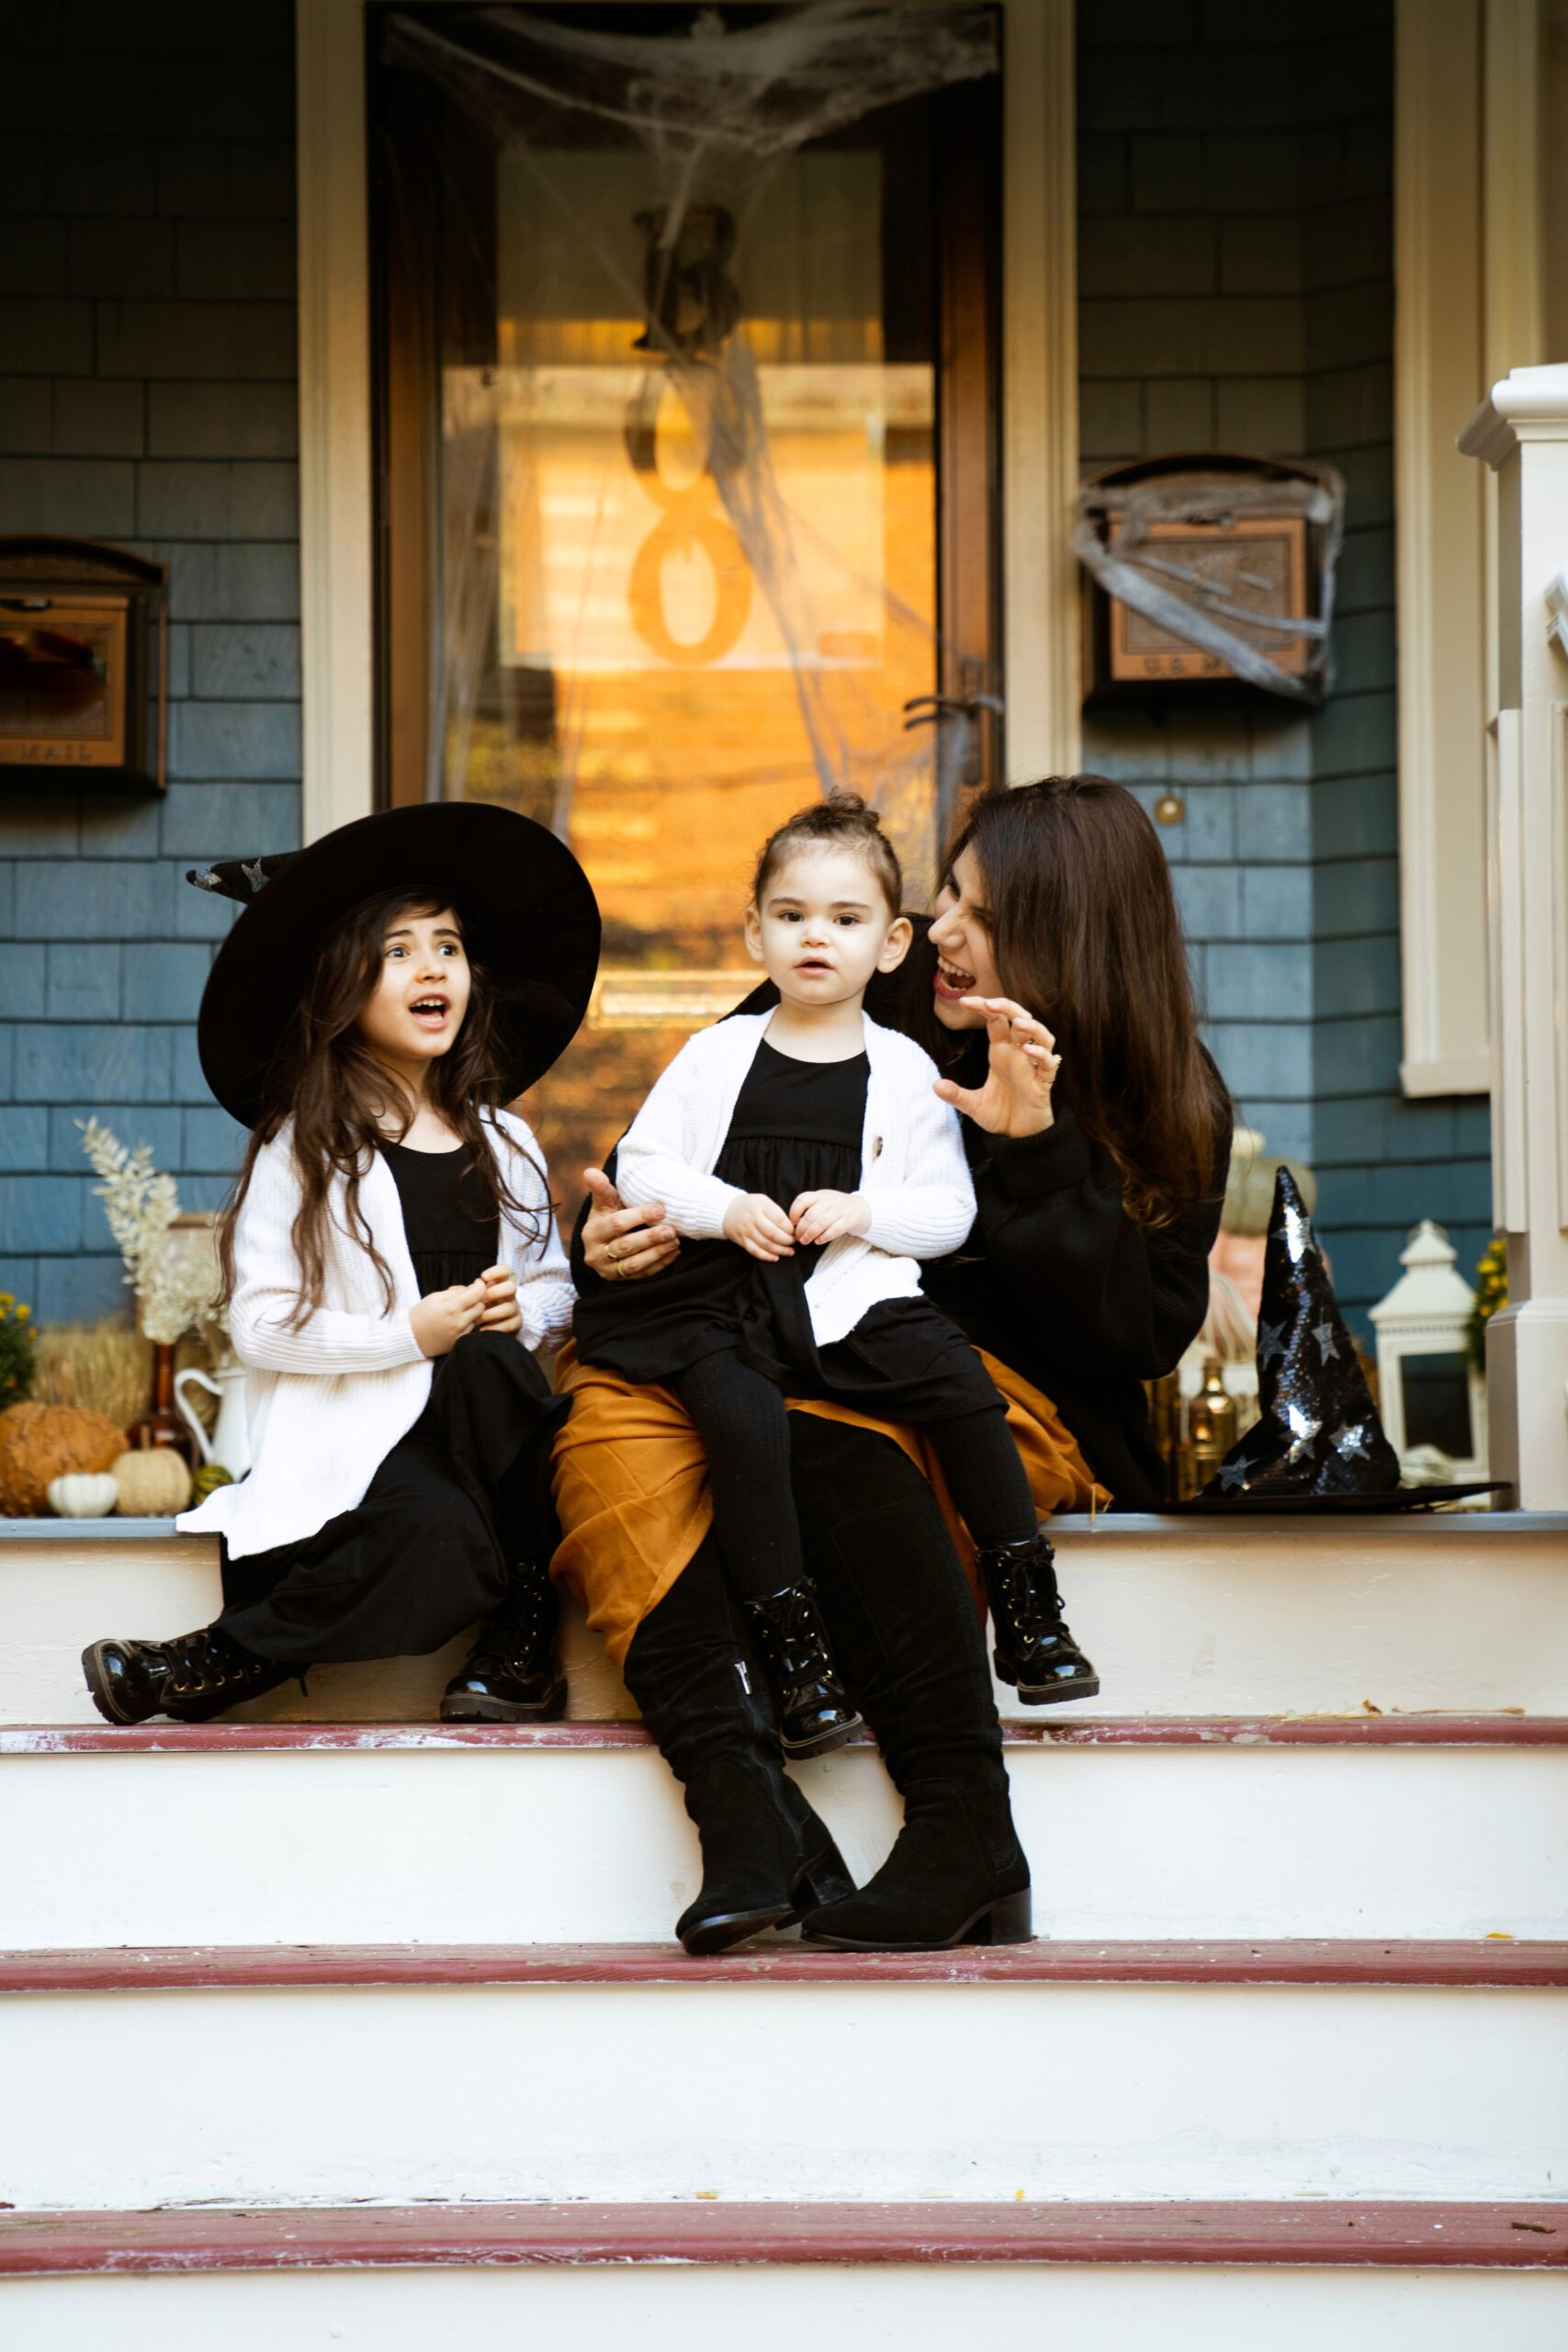 It's time to decorate your front porch for fall! I'm sharing easy tips and tricks for styling a Halloween porch that can easily transition to a fall porch just in time for Thanksgiving! | @glitterinclexi | GLITTERINC.COM